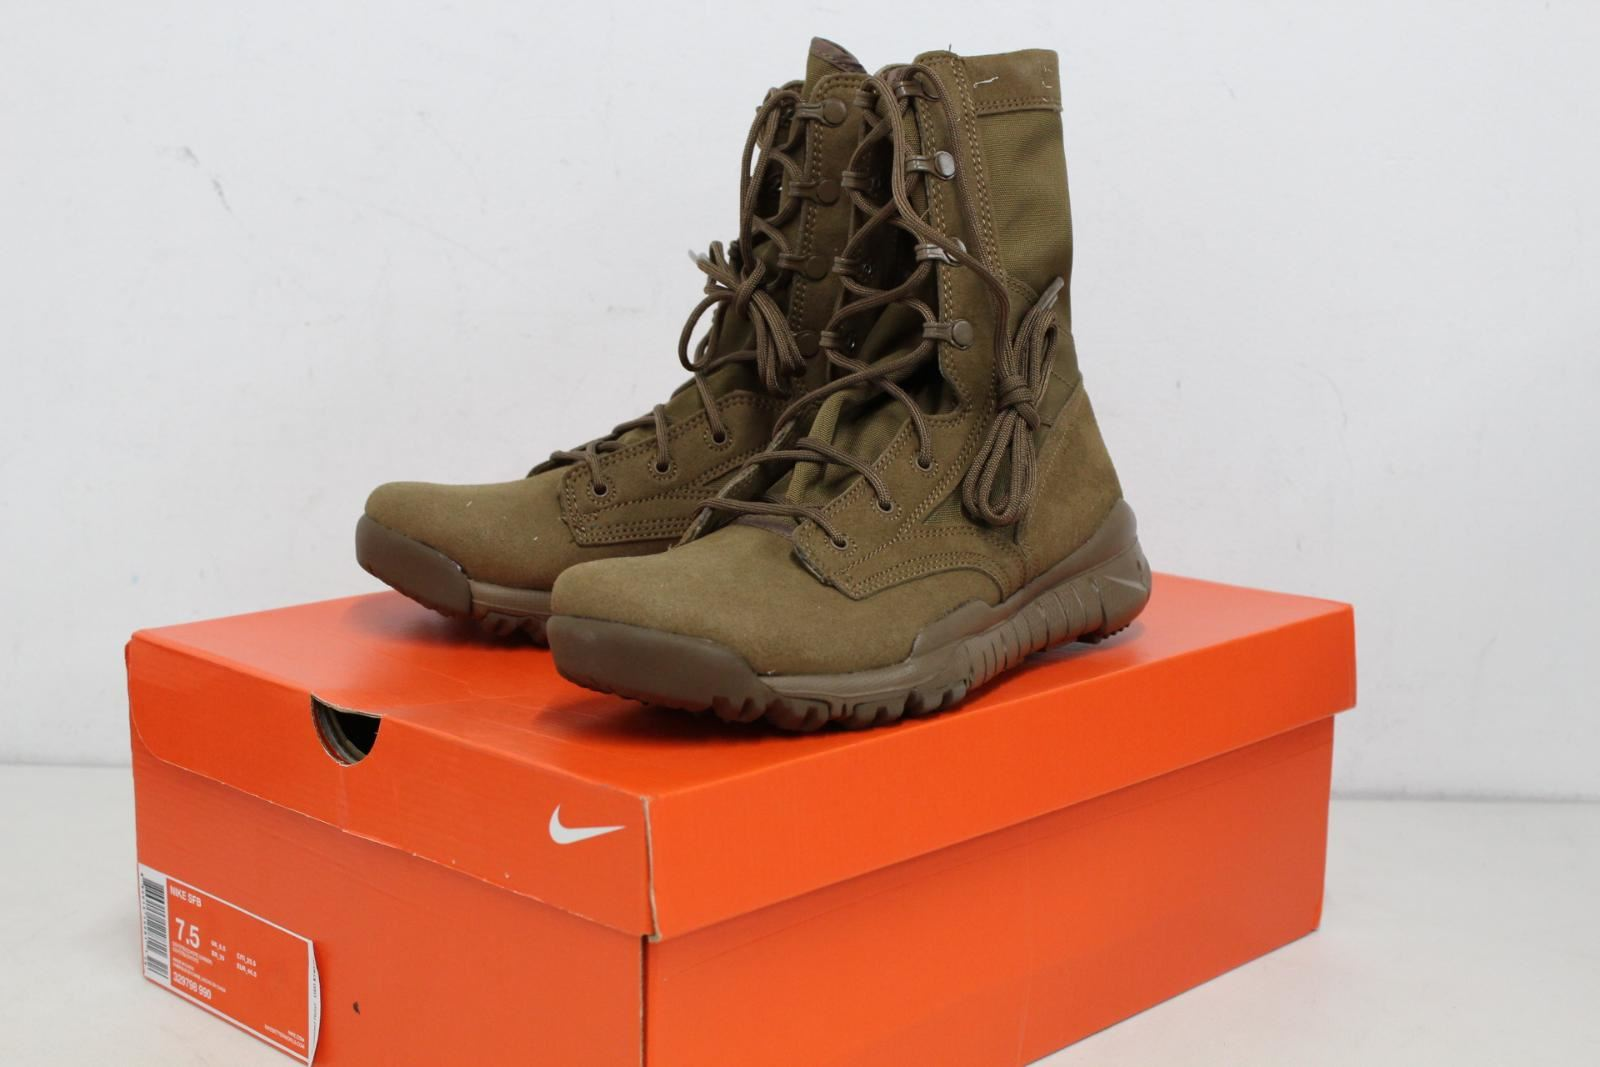 85324944c4 Mens Boot Military SFB 329798-990 Coyote Tan Special Field Size BNIB NIKE  6.5 wqrlmy801-Athletic Shoes